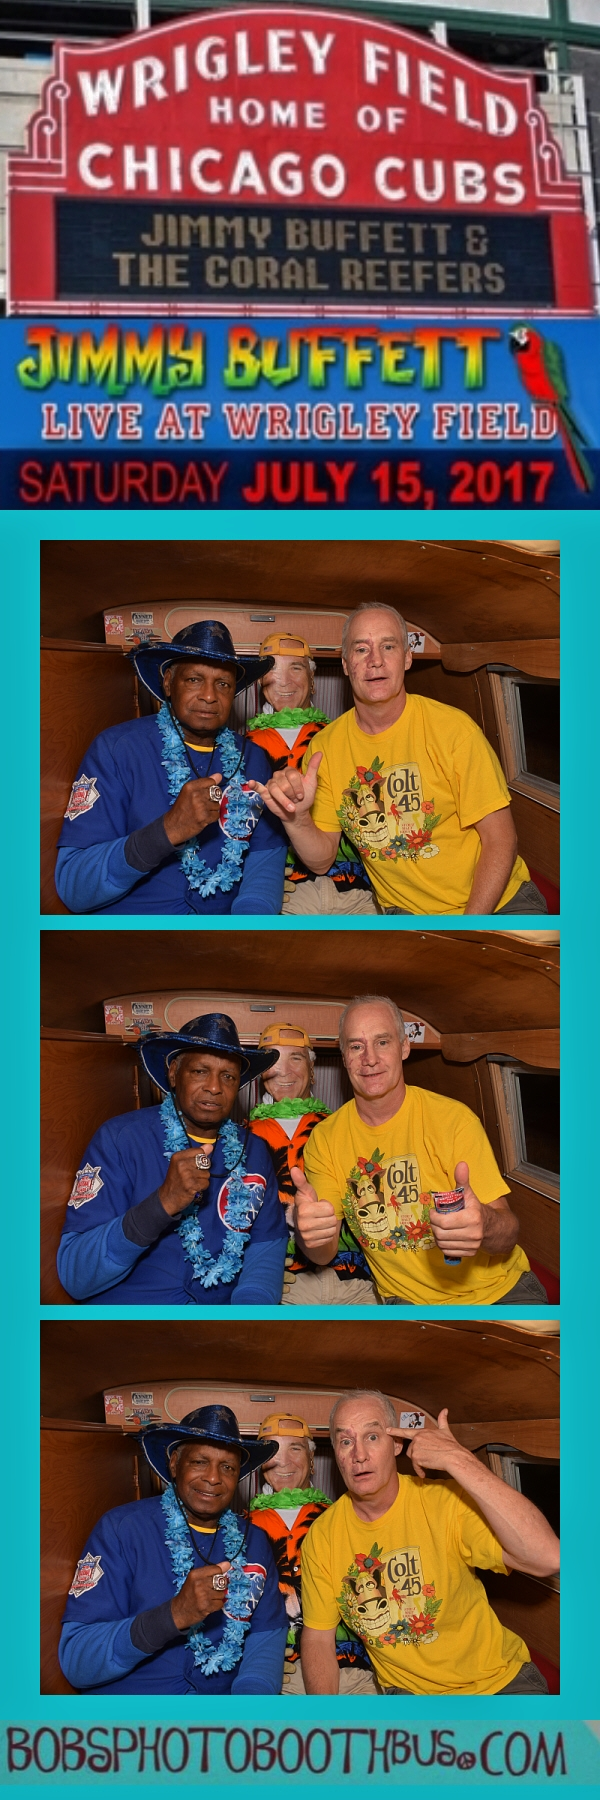 Jimmy Buffett final photo strip graphic_67.jpg